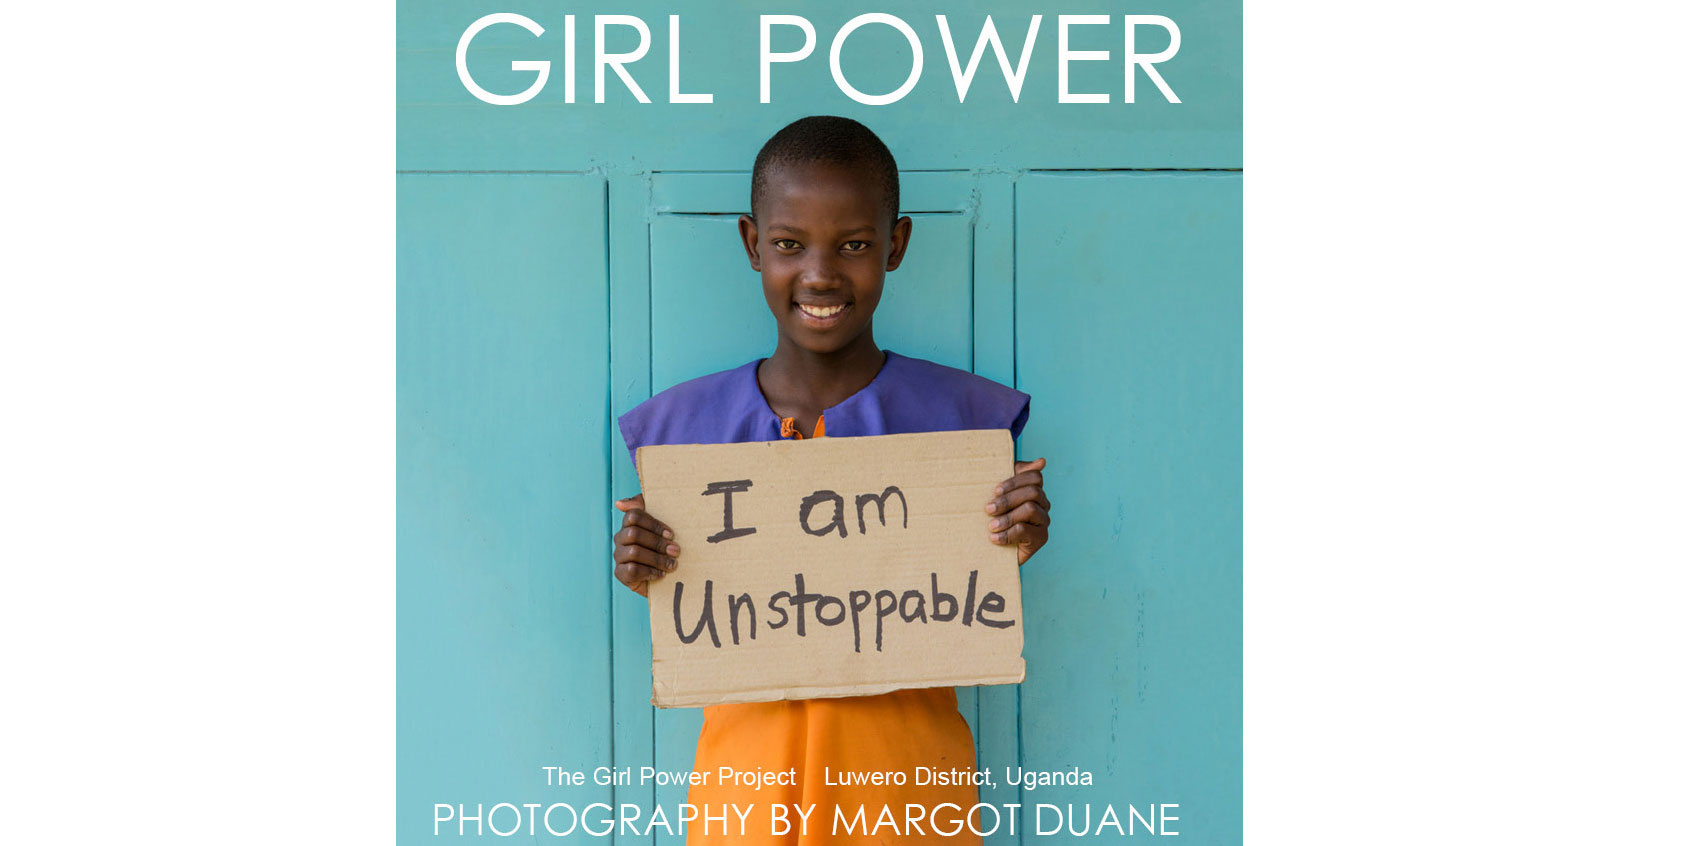 01_FINALThe-Girl-Power-Project-Cover.jpg